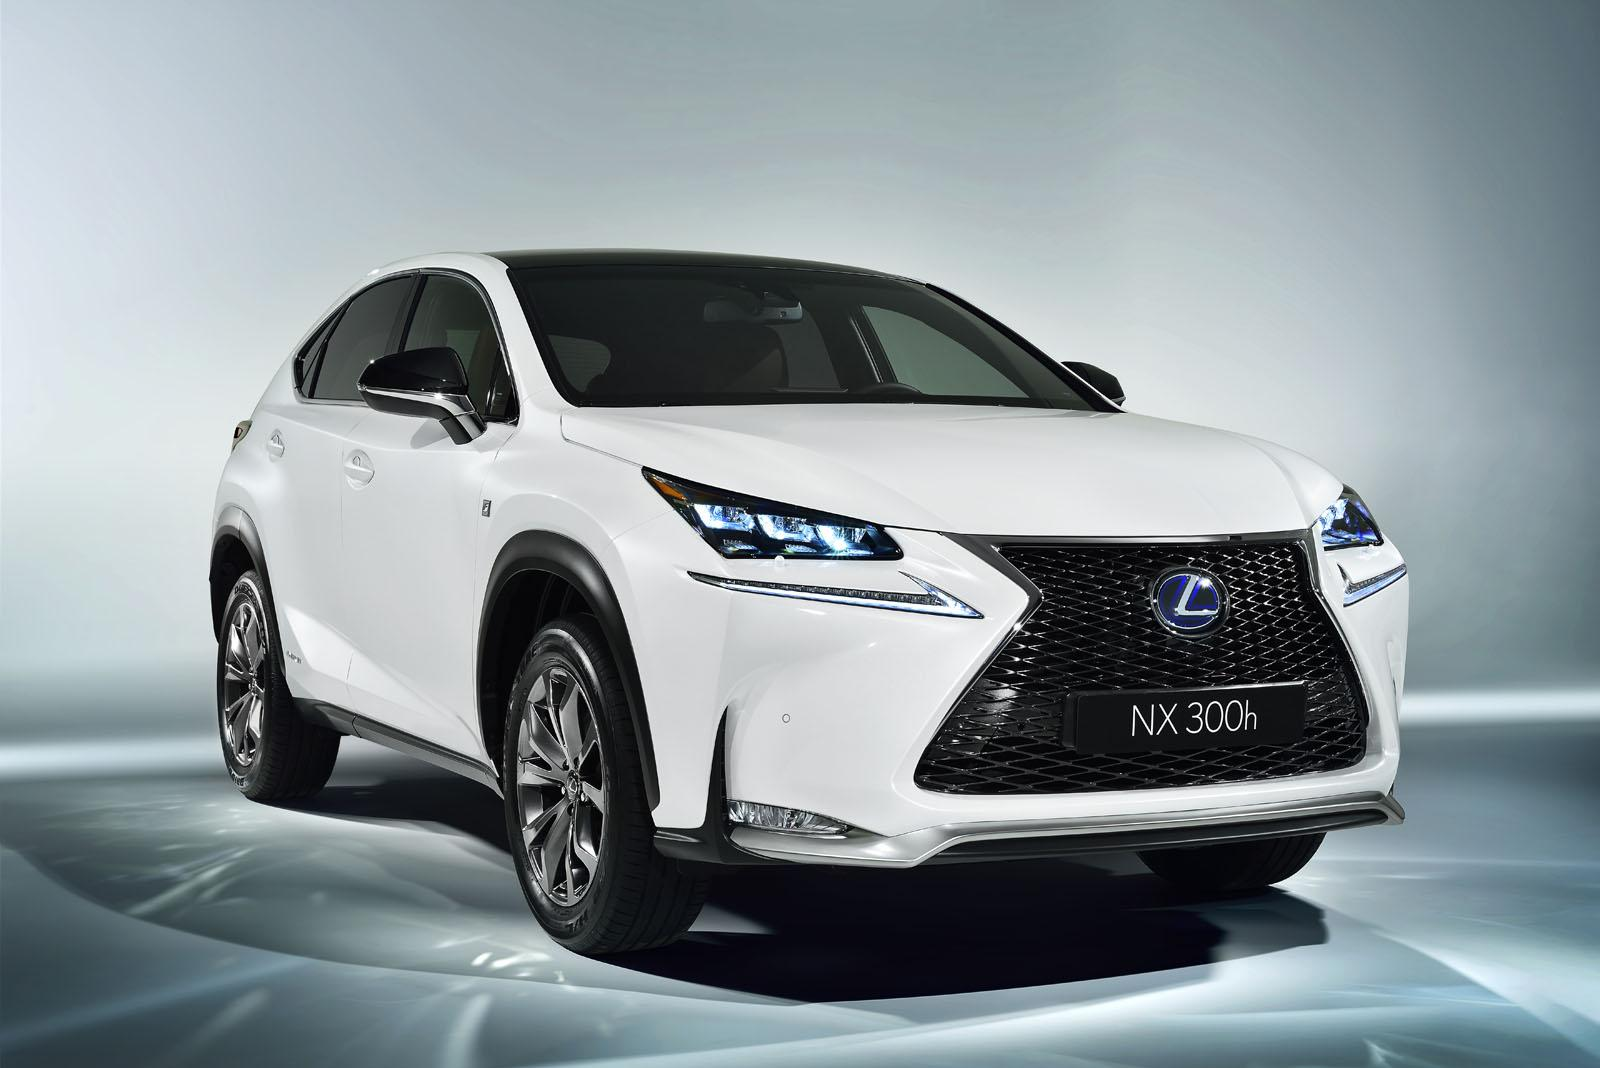 2015 lexus nx300h uk pricing and trim levels autonews 1. Black Bedroom Furniture Sets. Home Design Ideas